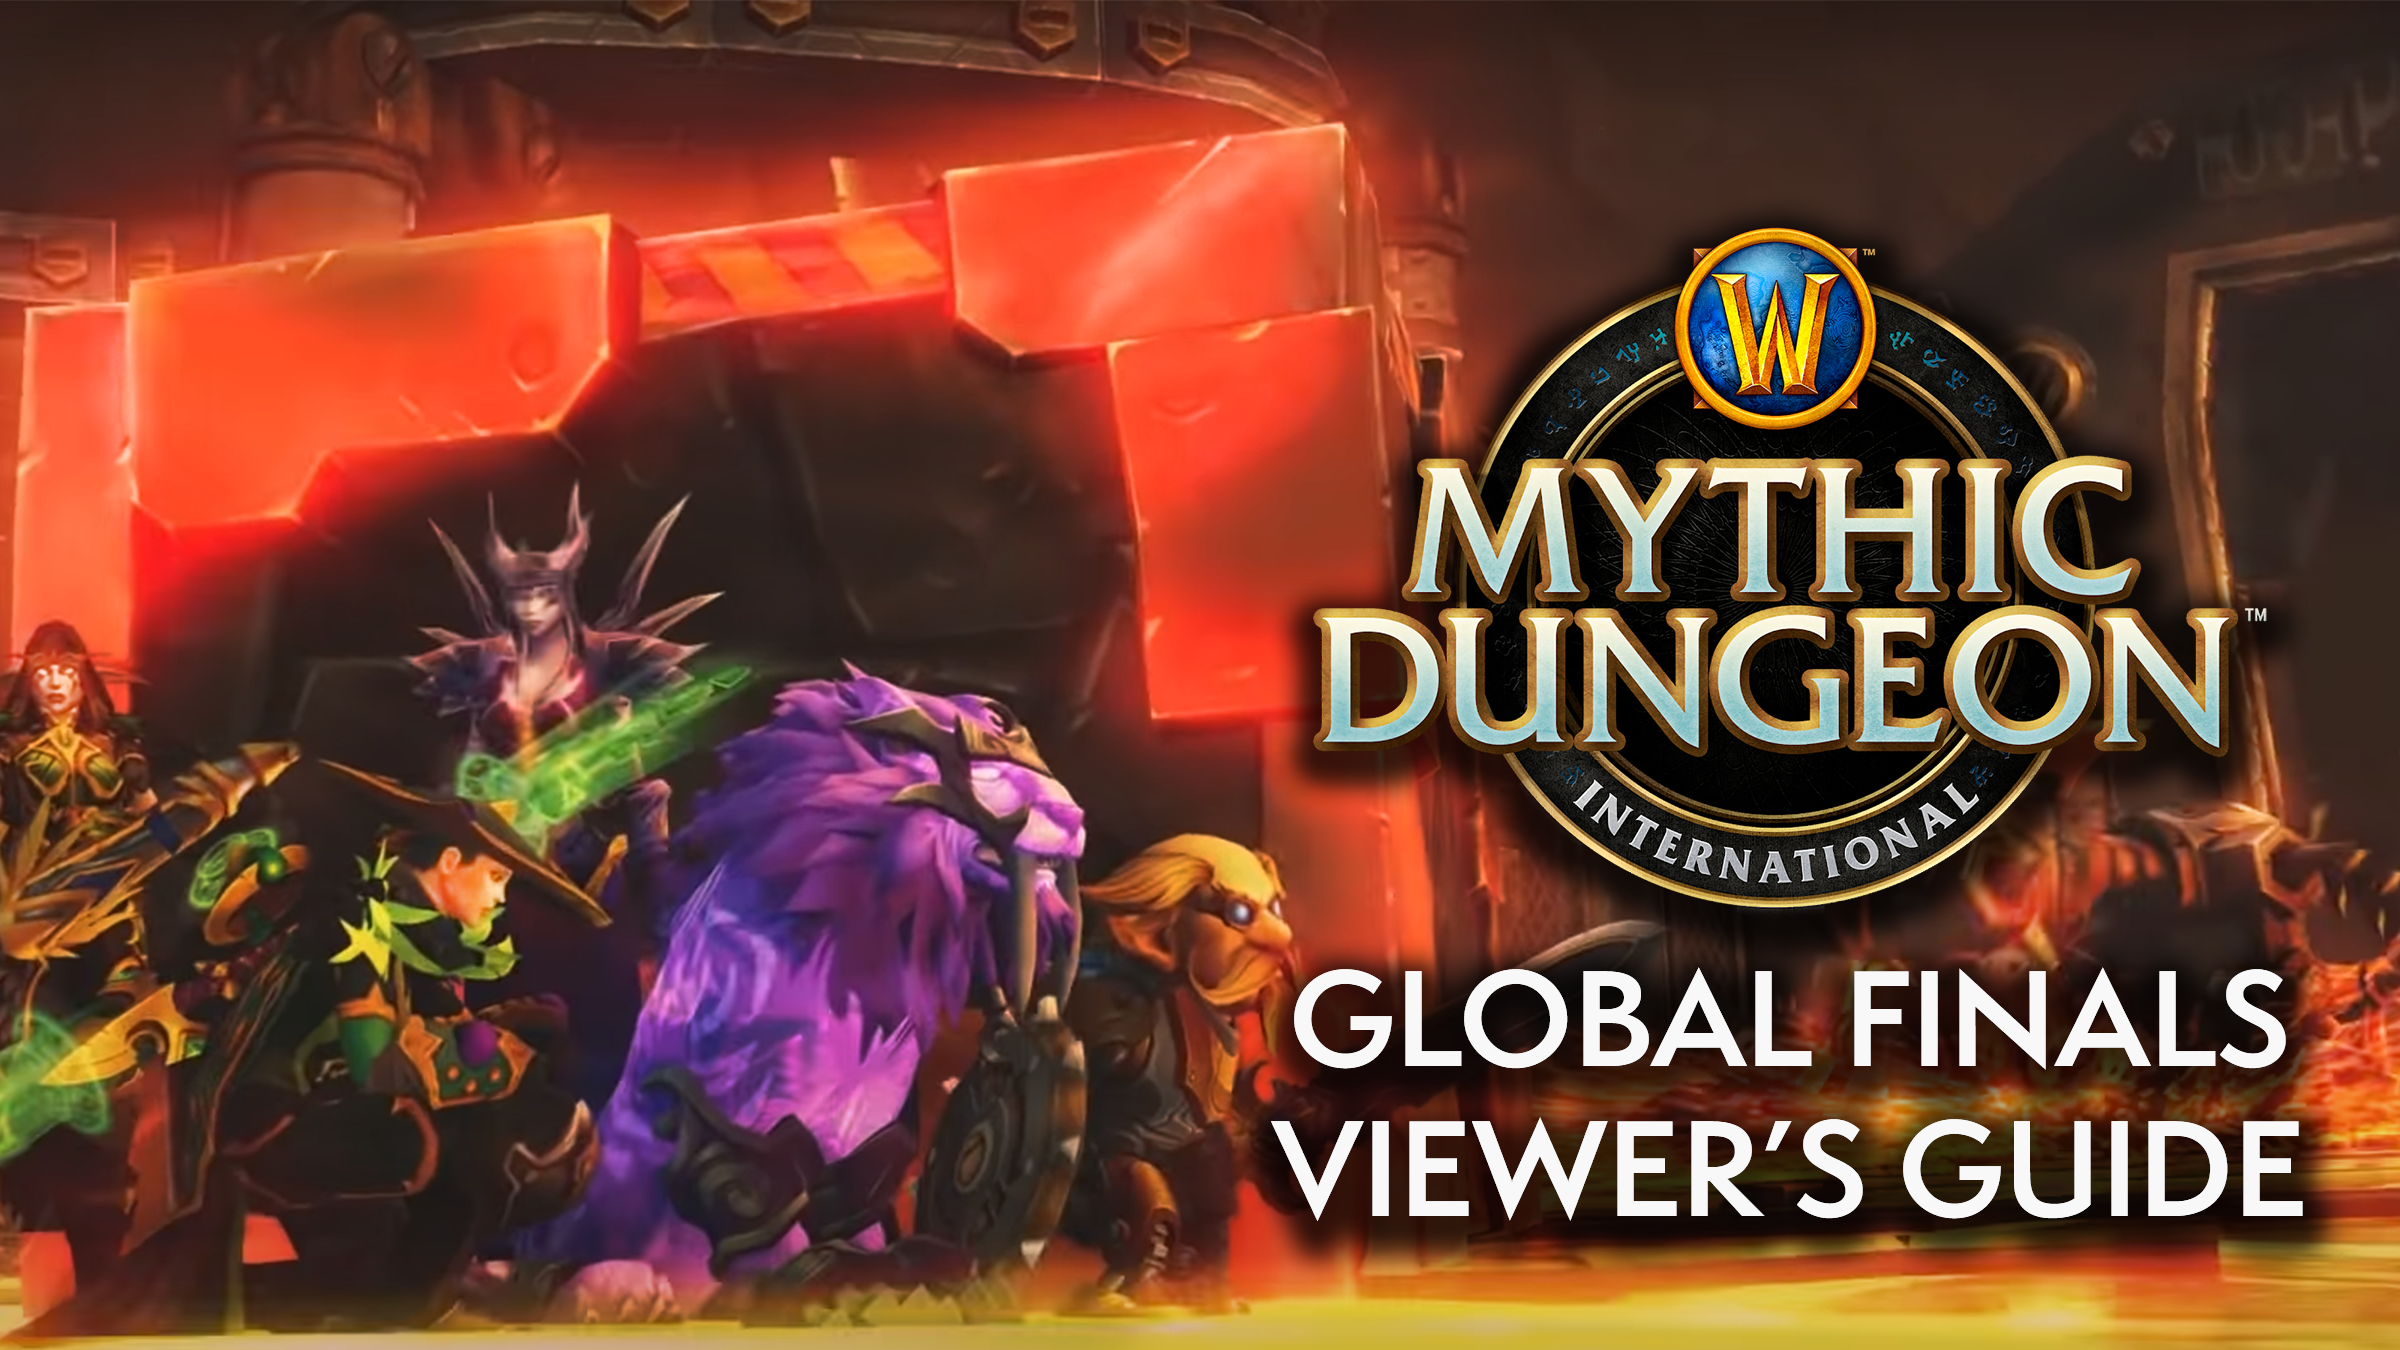 Guía para ver la final global del Mythic Dungeon International